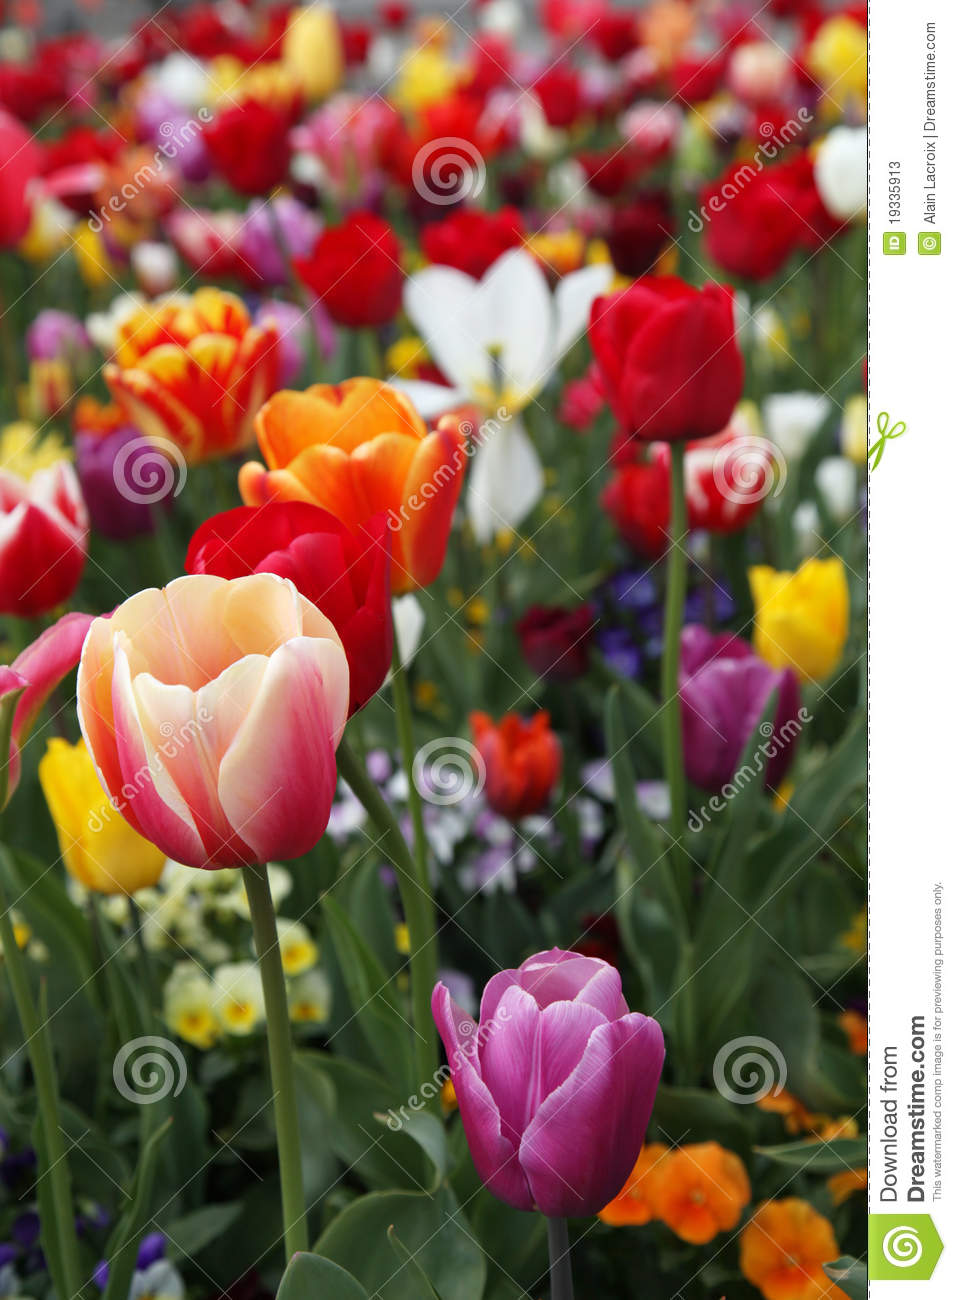 Colorful Tulips Stock Photos - Image: 19335913